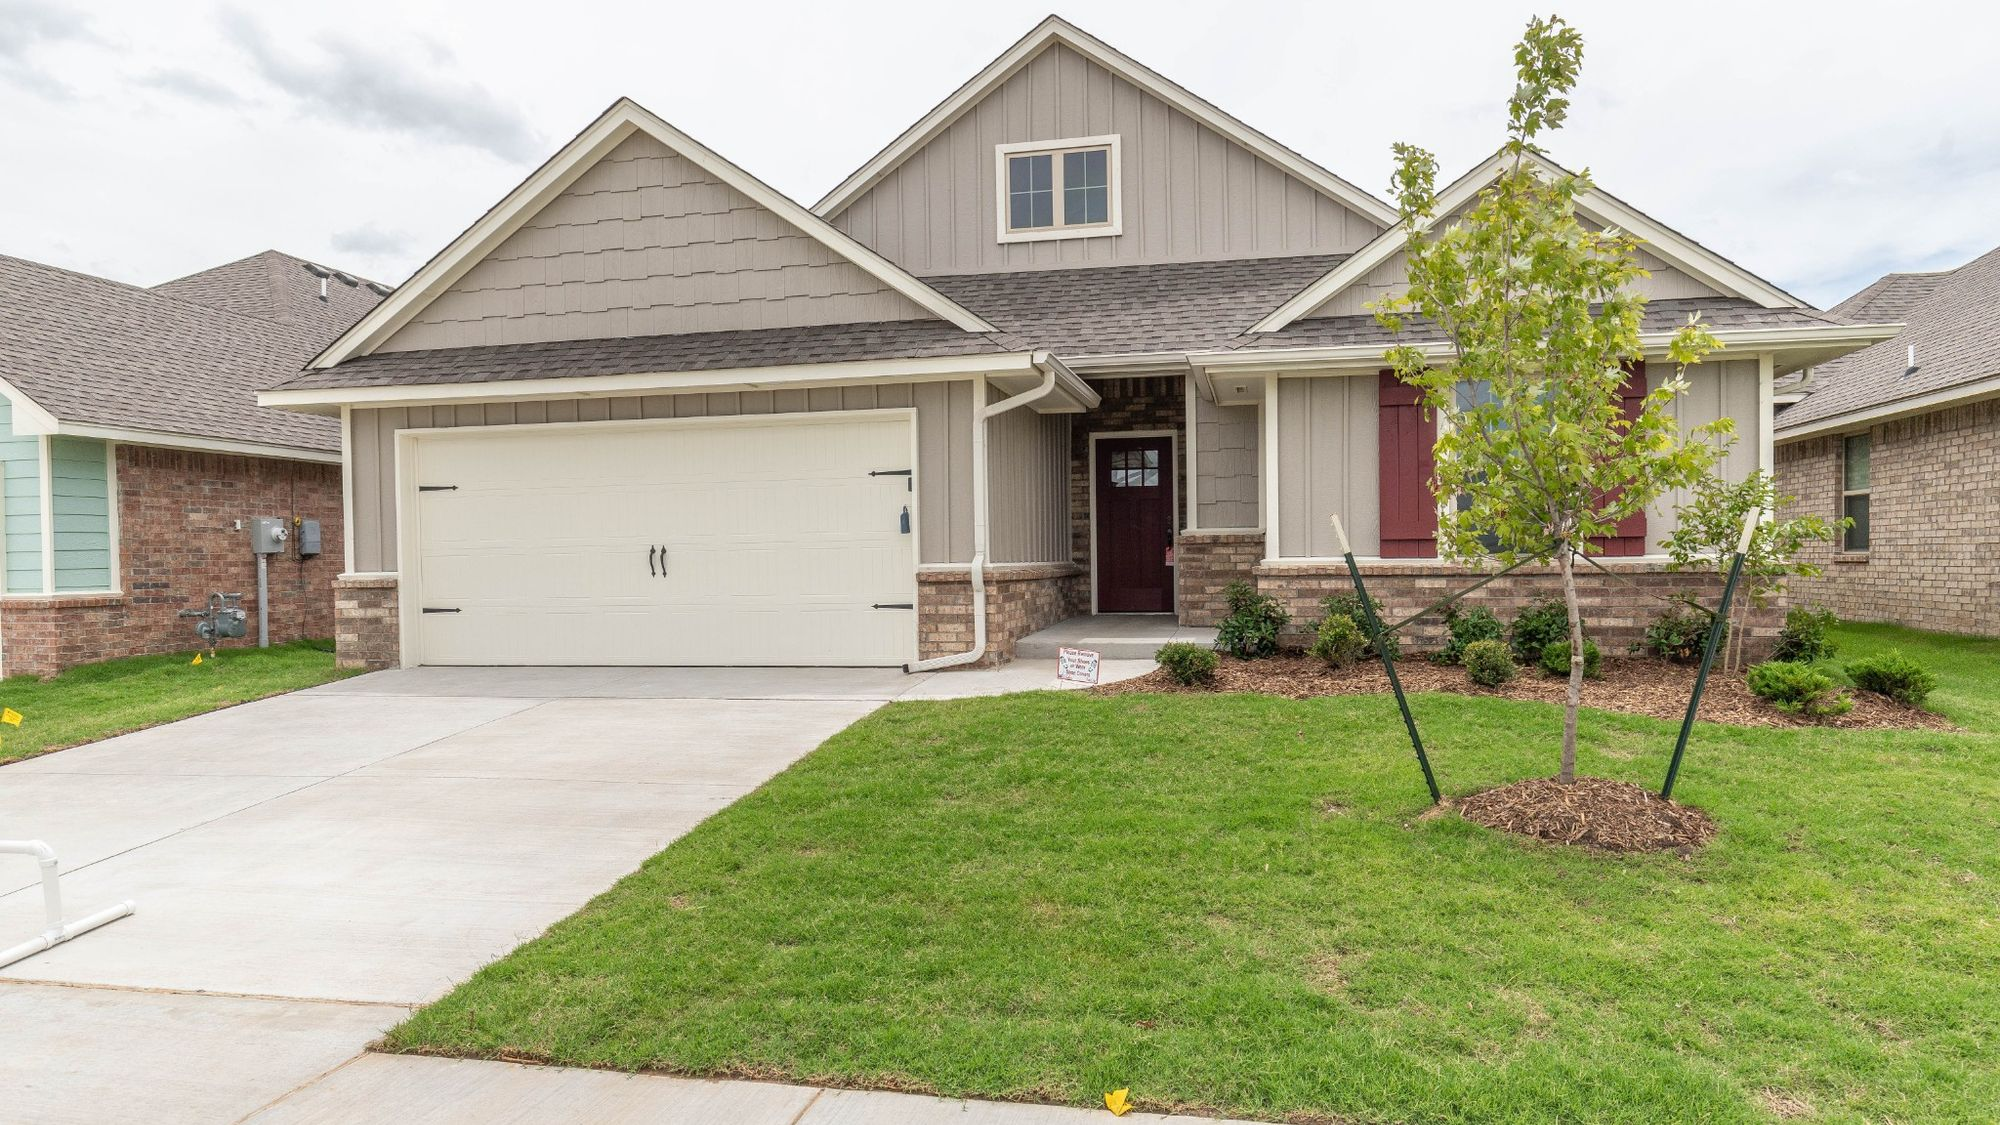 Homes by Taber Kamber Floor Plan - 9040 NW 119th St